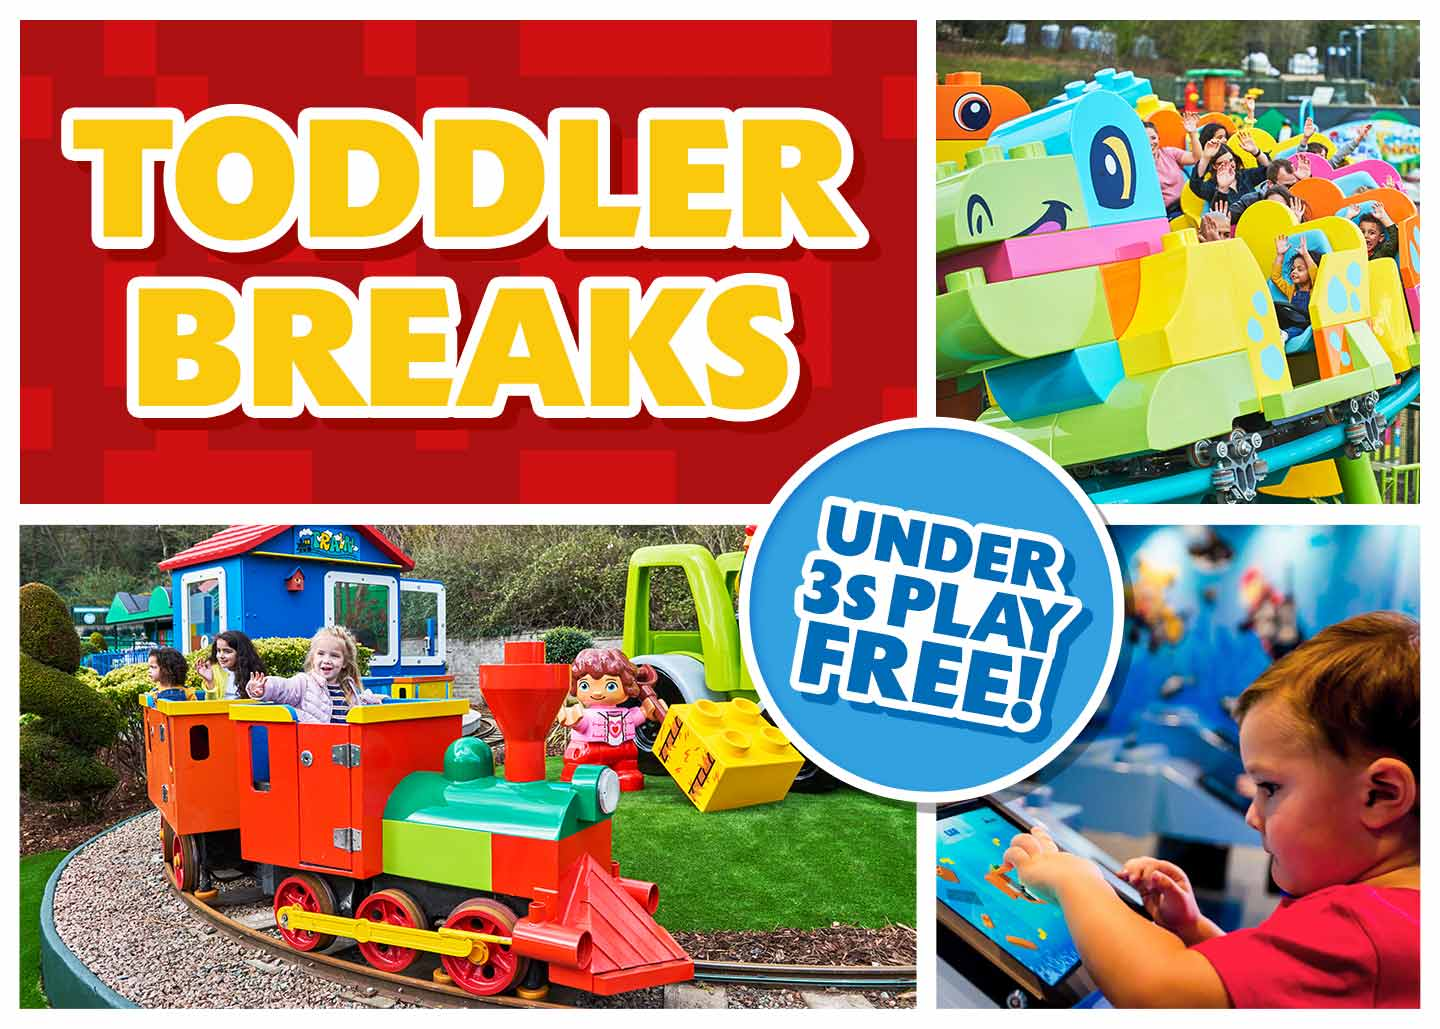 Toddler breaks at LEGOLAND® Windsor Resort